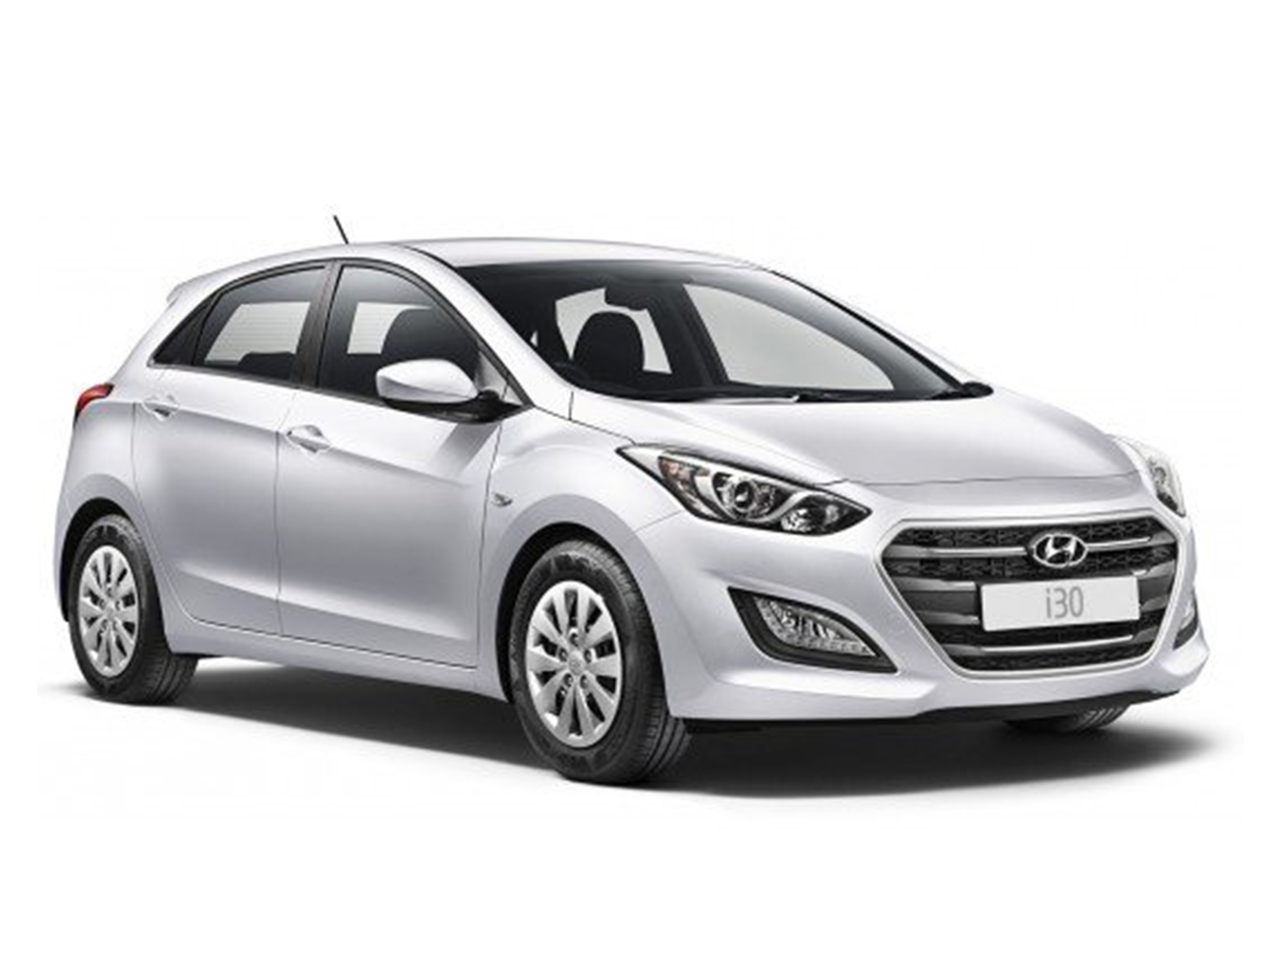 Find best value and selection for your 2013 Hyundai Elantra GT All new 2012  2013 i30 LED Interior Lights Package search on eBay.Hyundai i30 owners  manual ...